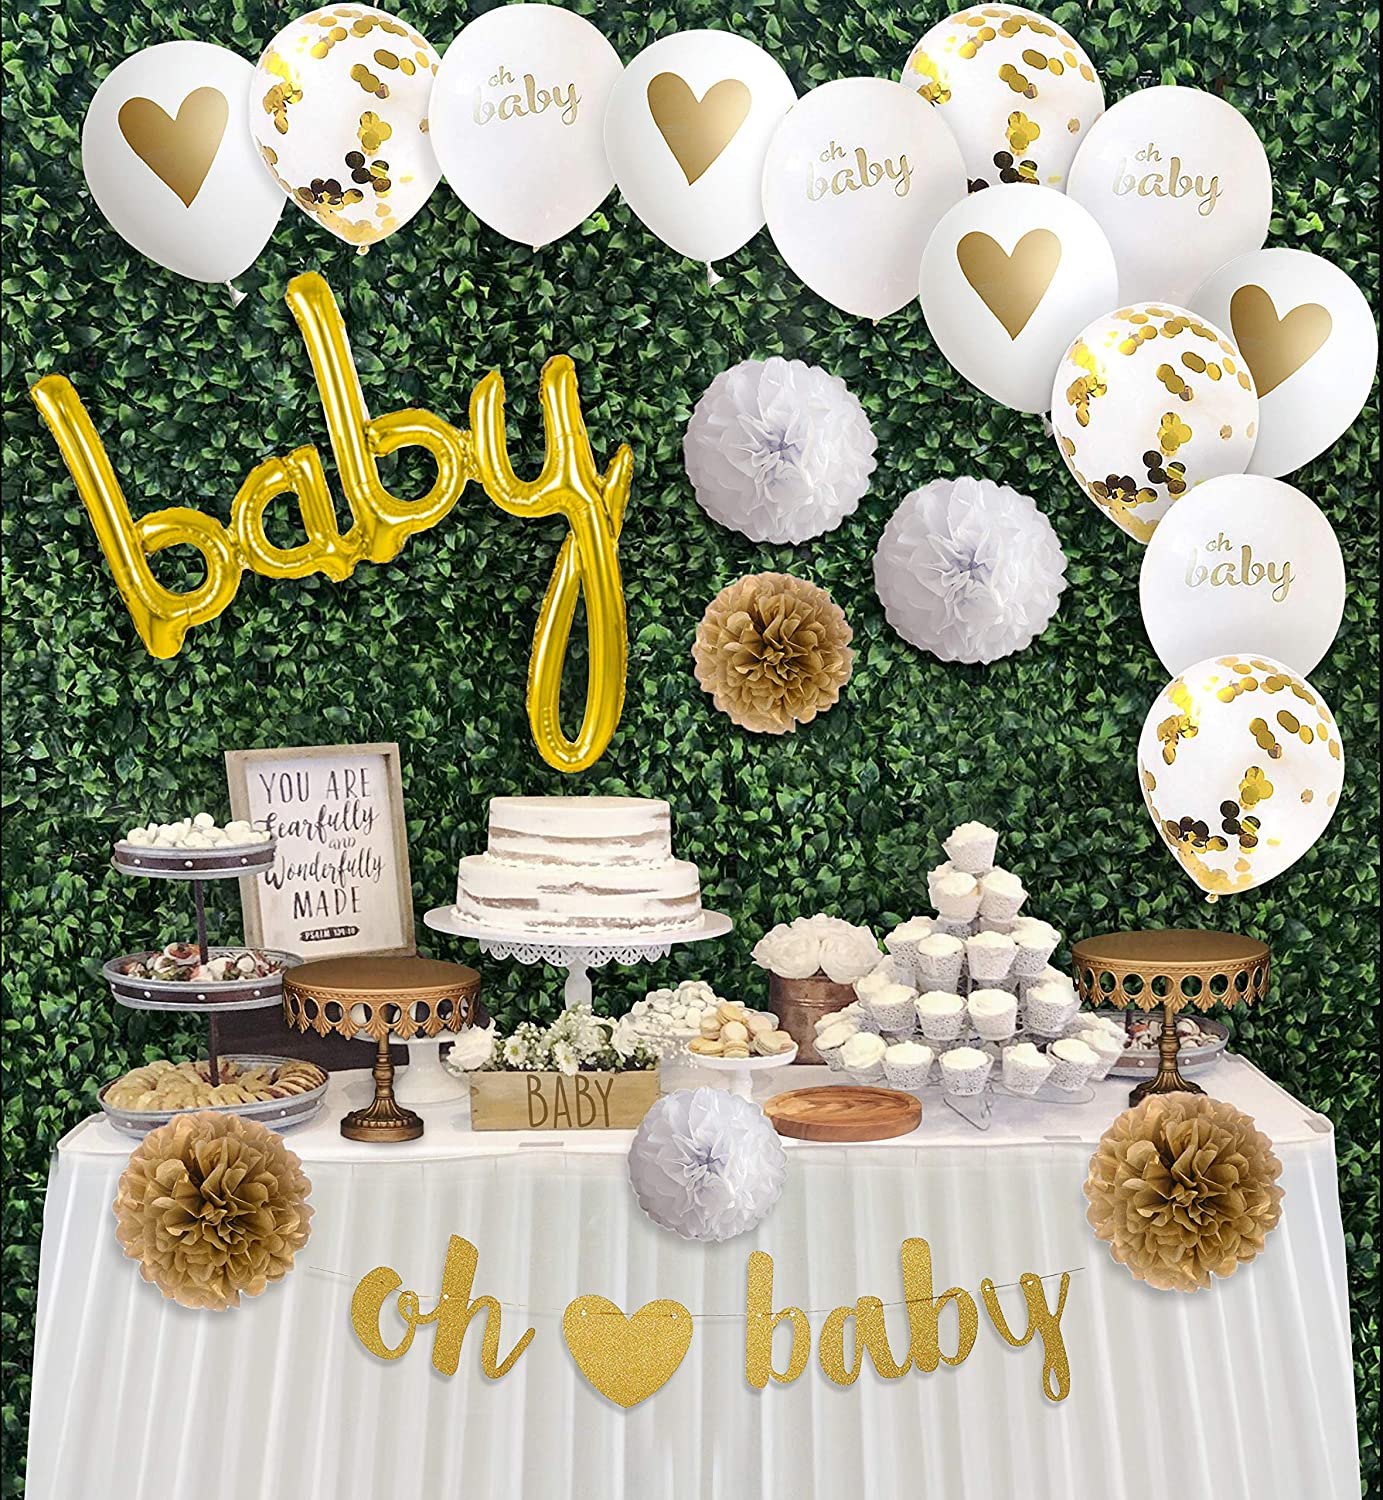 Baby Shower Decorations Gender Neutral Kit, Welcome Your Baby With This Gold White Party Decor Including Gold Banner, Baby Balloon, Paper Flowers Pom Poms, Confetti Balloons & Oh Baby Heart Balloons